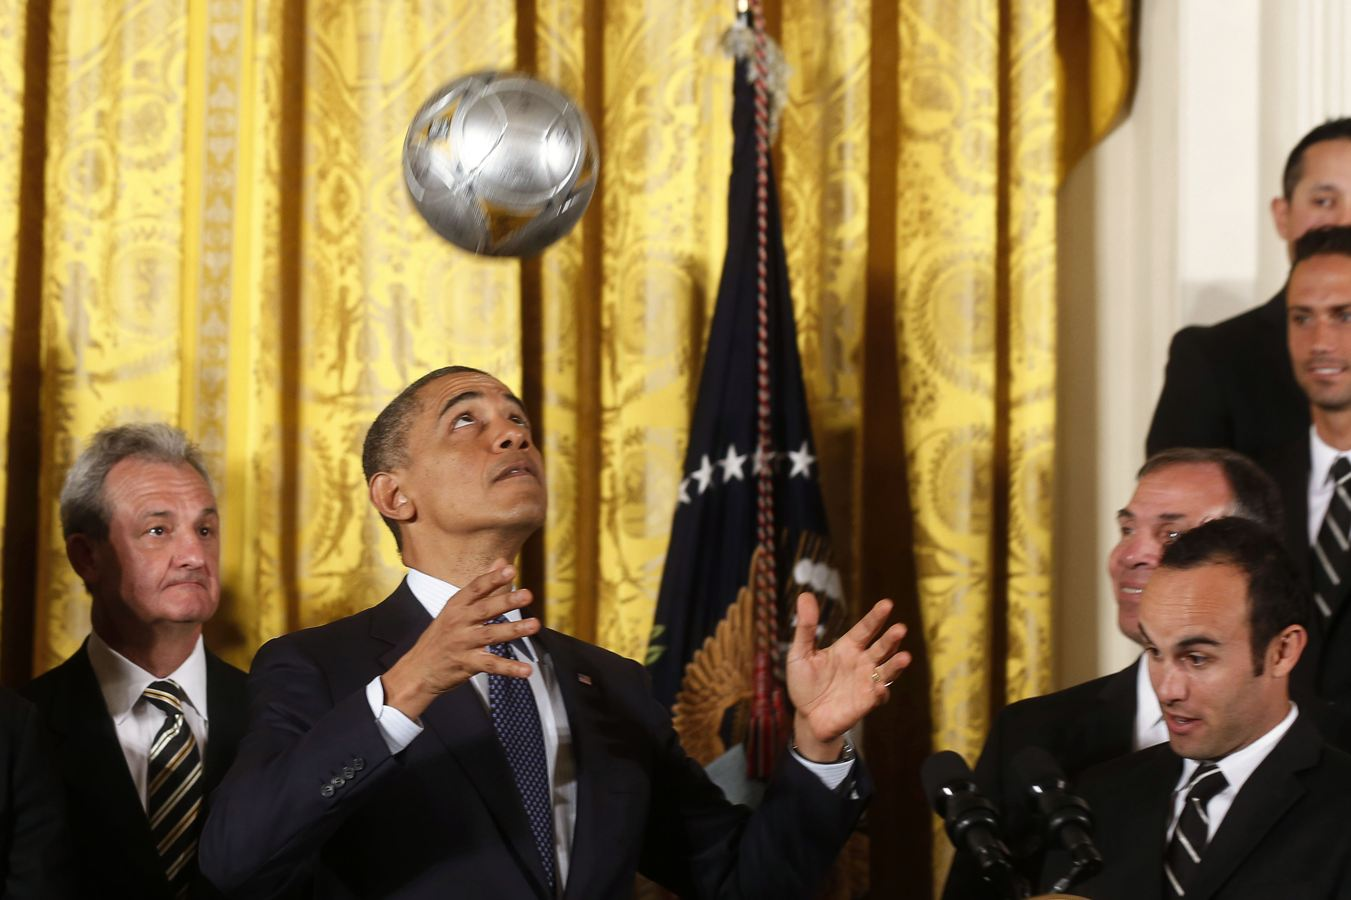 U.S. President Barack Obama bounces a soccer ball off his head after receiving it as a gift while hosting the 2012 Major League Soccer (MLS) Cup winner Los Angeles Galaxy, at a ceremony in the East Room of the White House in Washington, March 26, 2013. REUTERS/Larry Downing